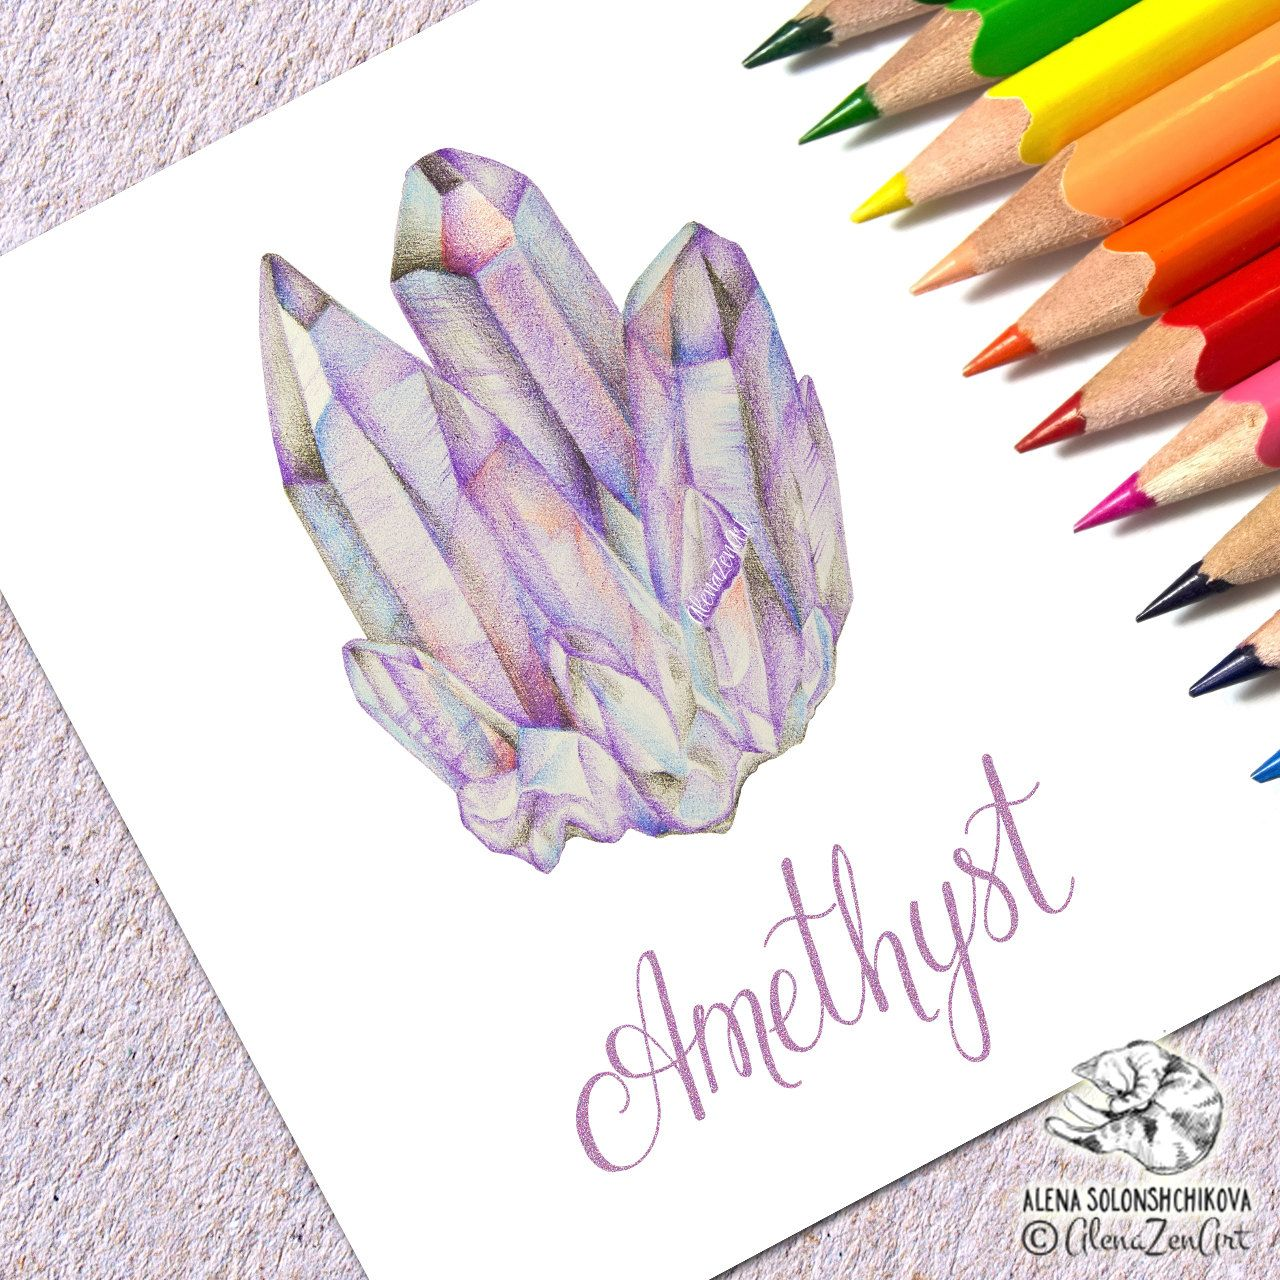 Crystal clipart amethyst crystal. Print art crown chakra